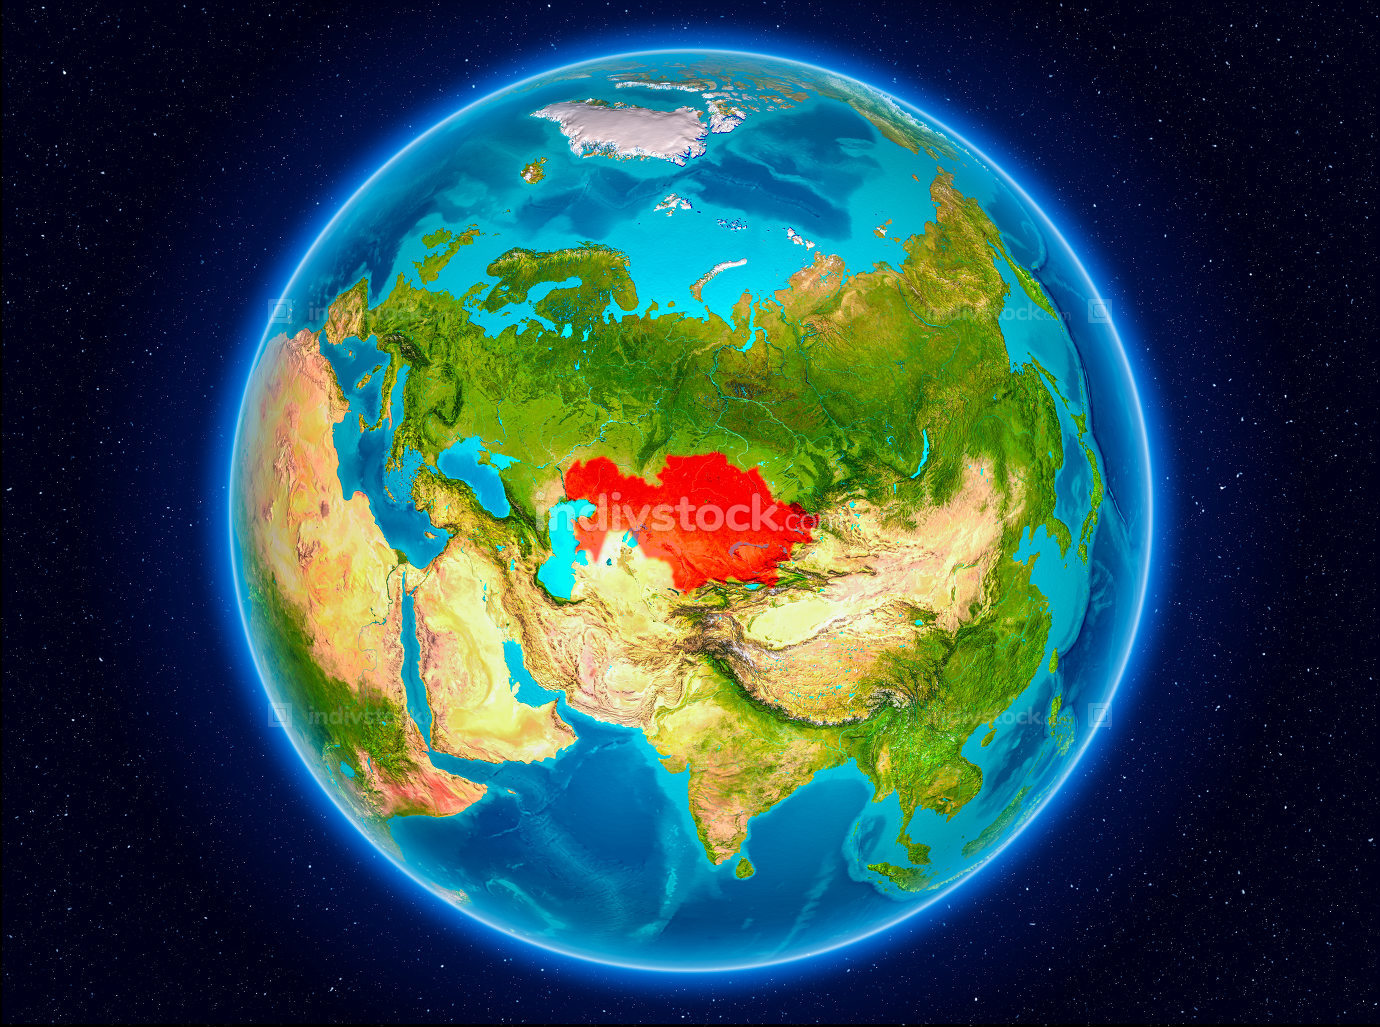 Kazakhstan on Earth